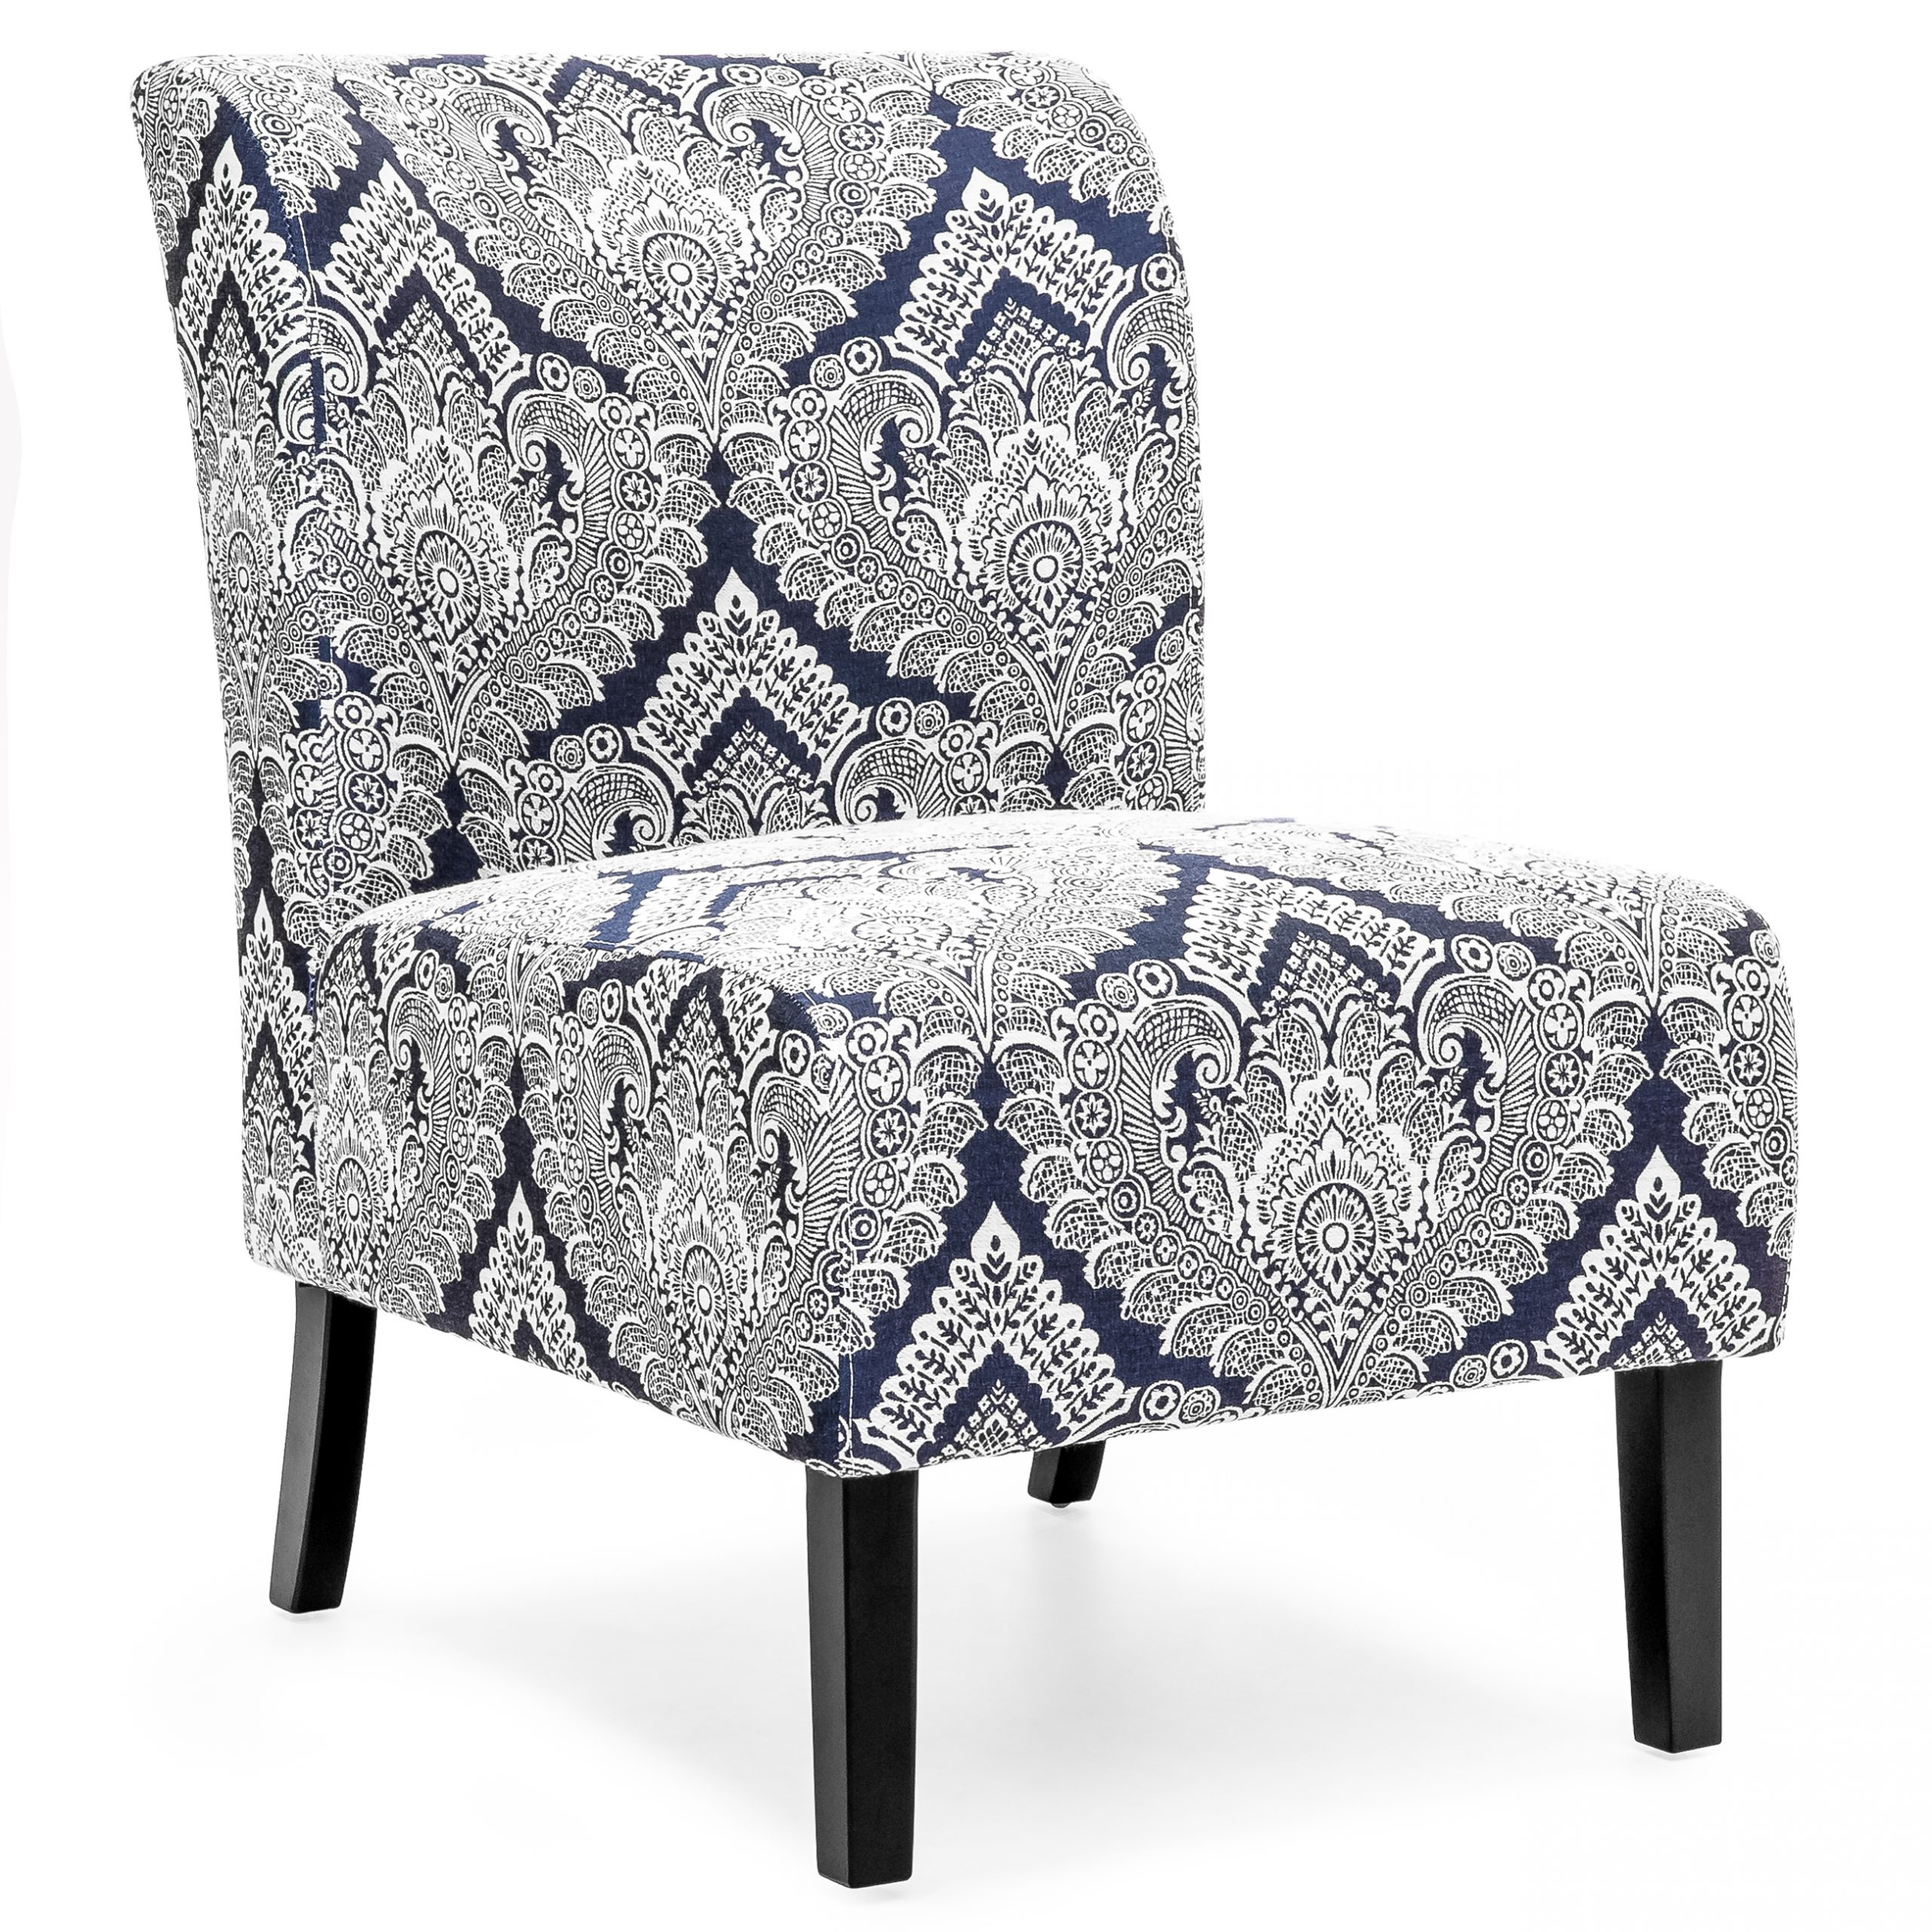 Best Choice Products Modern Contemporary Upholstered Armless Accent Chair (Blue/White) – Walmart Intended For Armless Upholstered Slipper Chairs (View 11 of 15)